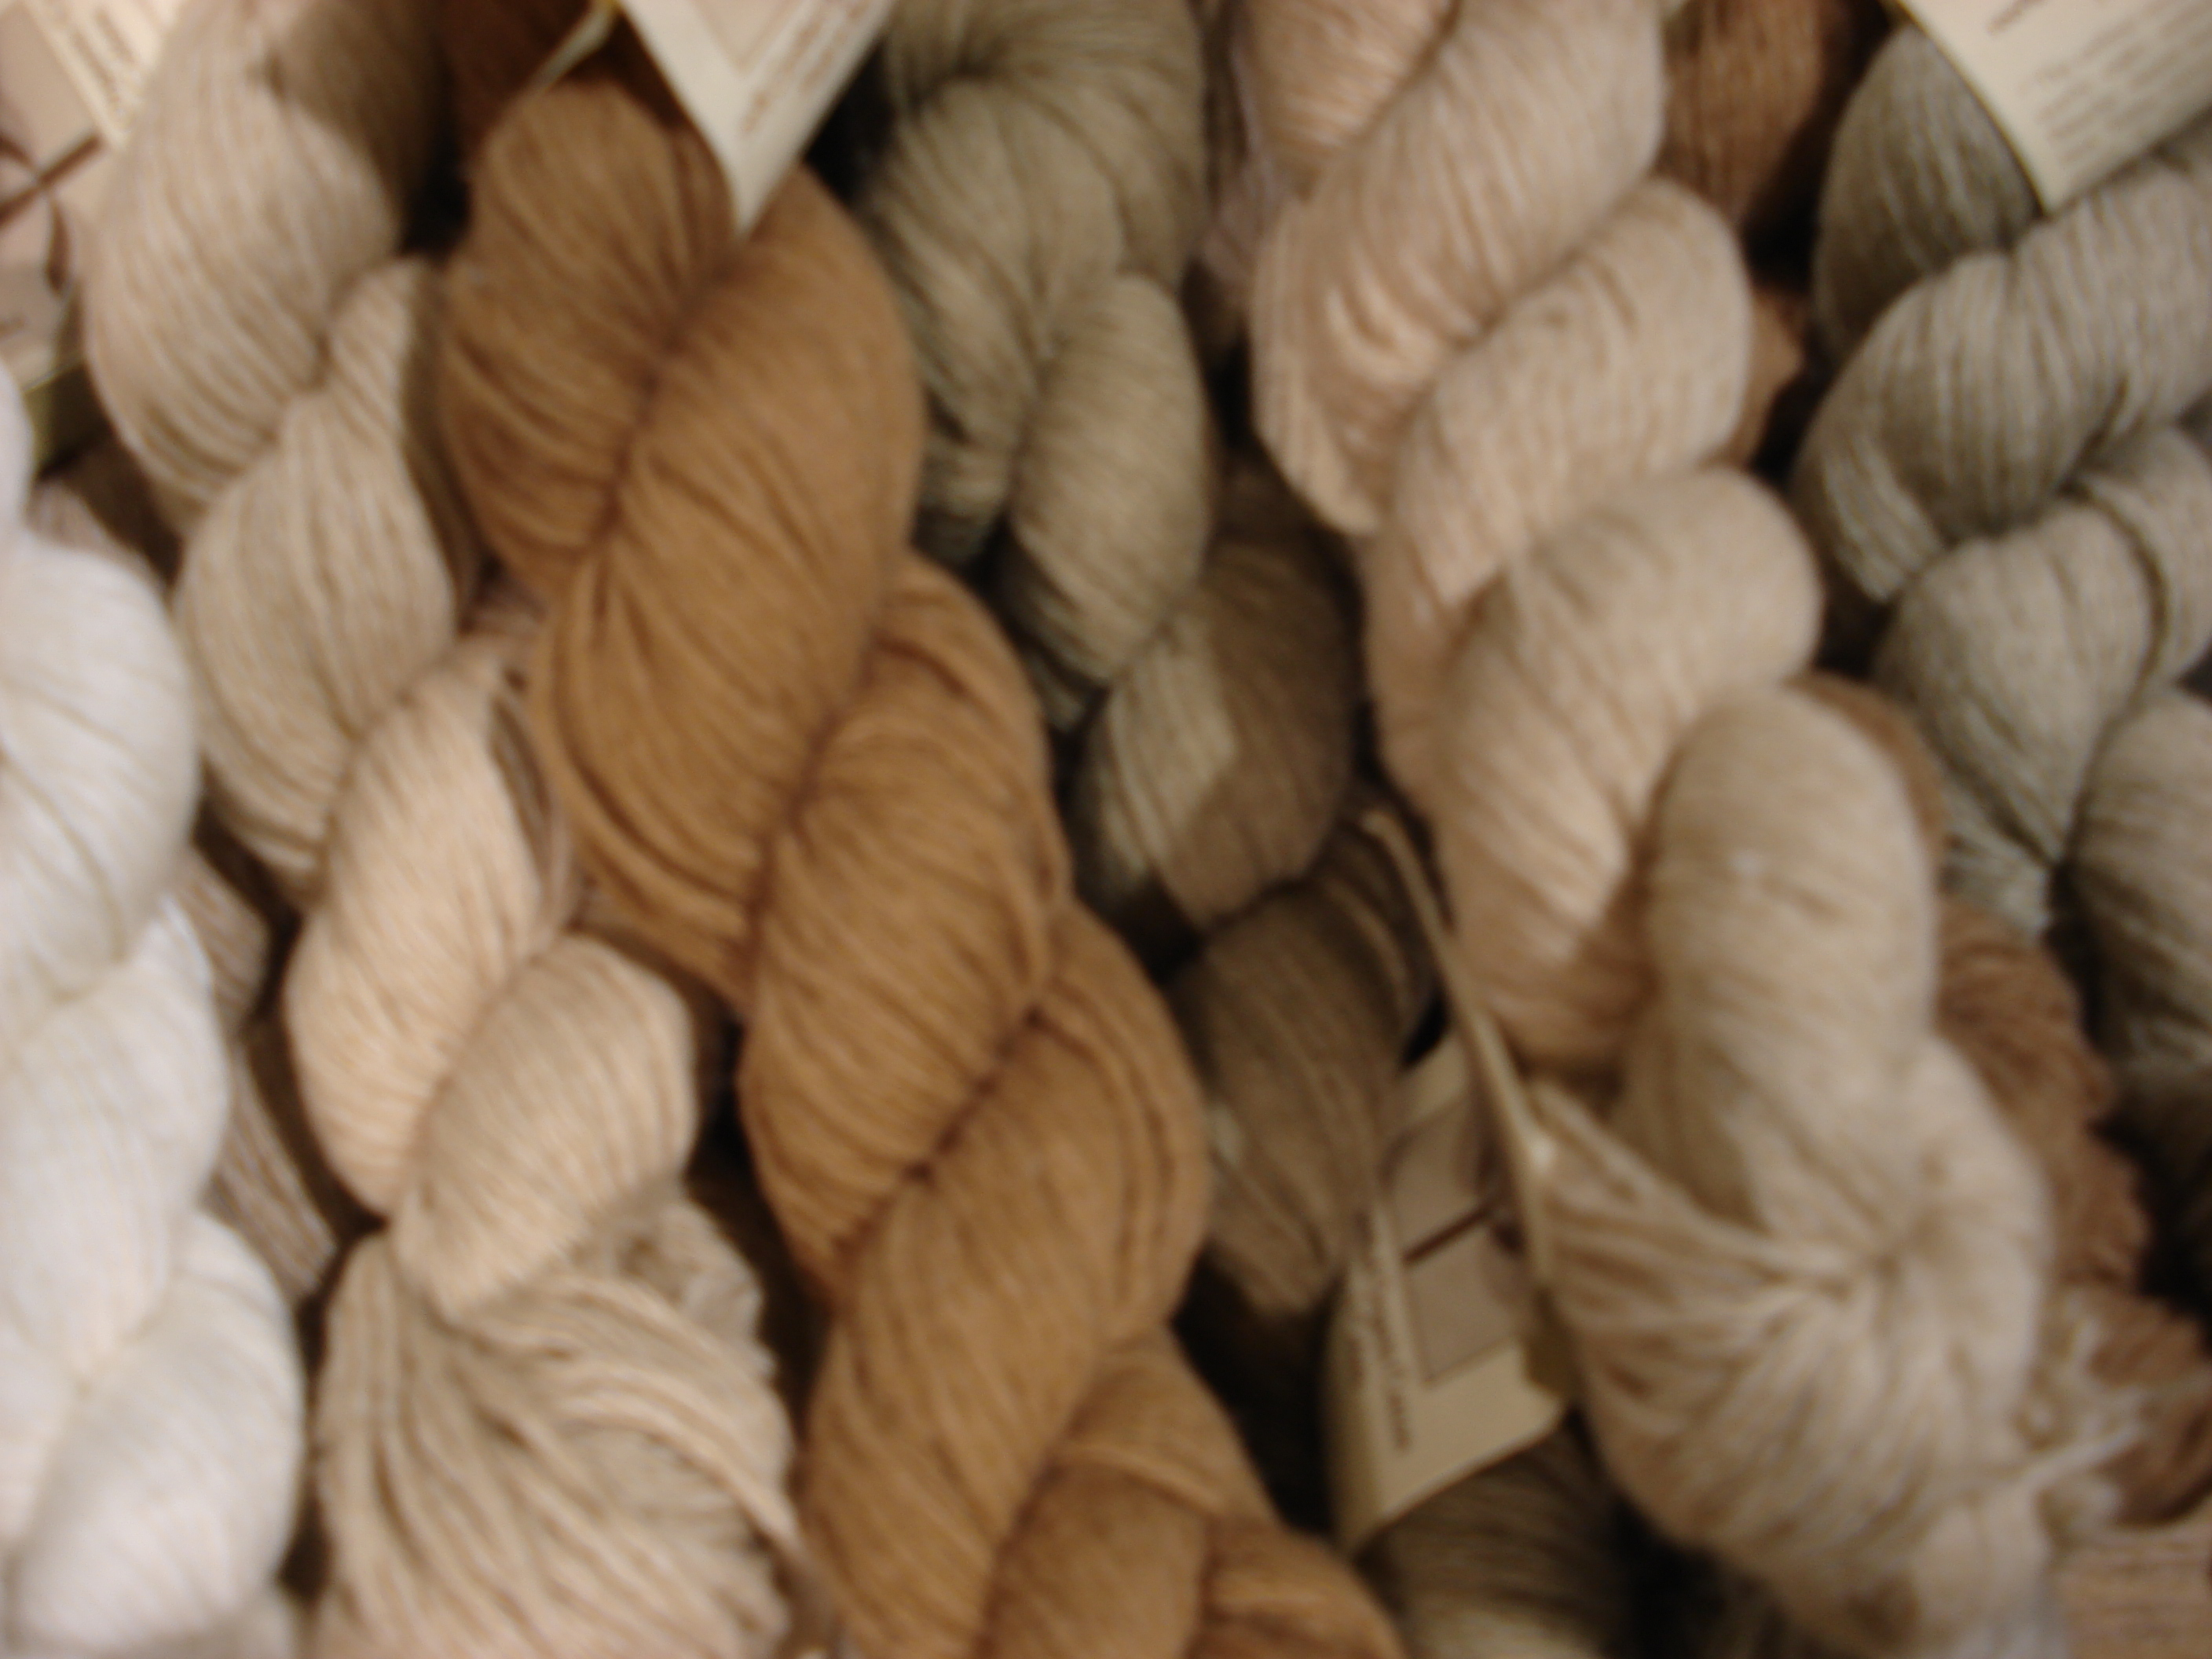 Foxfibre® Colorganic® naturally colored organic cotton and merino wool in the form of raw spinners seed cotton, prepared sliver, yarns, fabrics, and some articles of clothing. Bred, grown, designed and produced by Sally Vreseis Fox in the USA.